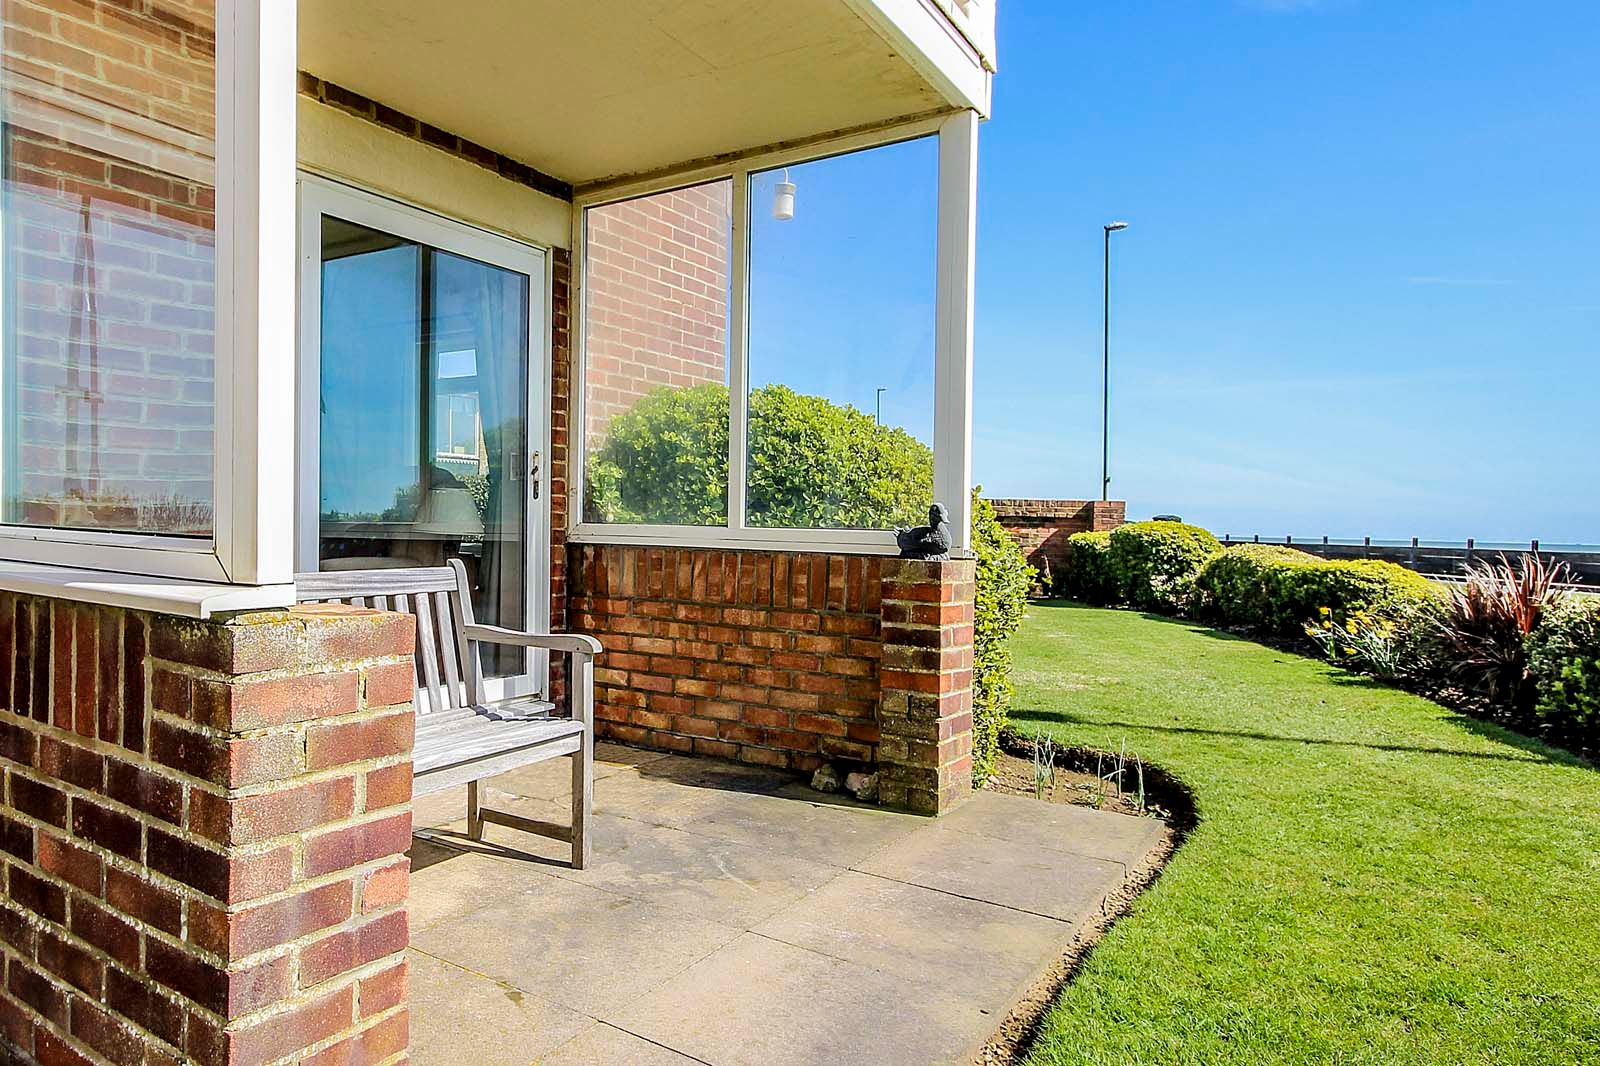 2 bed Apartment for sale in Rustington - Patio (Property Image 2)